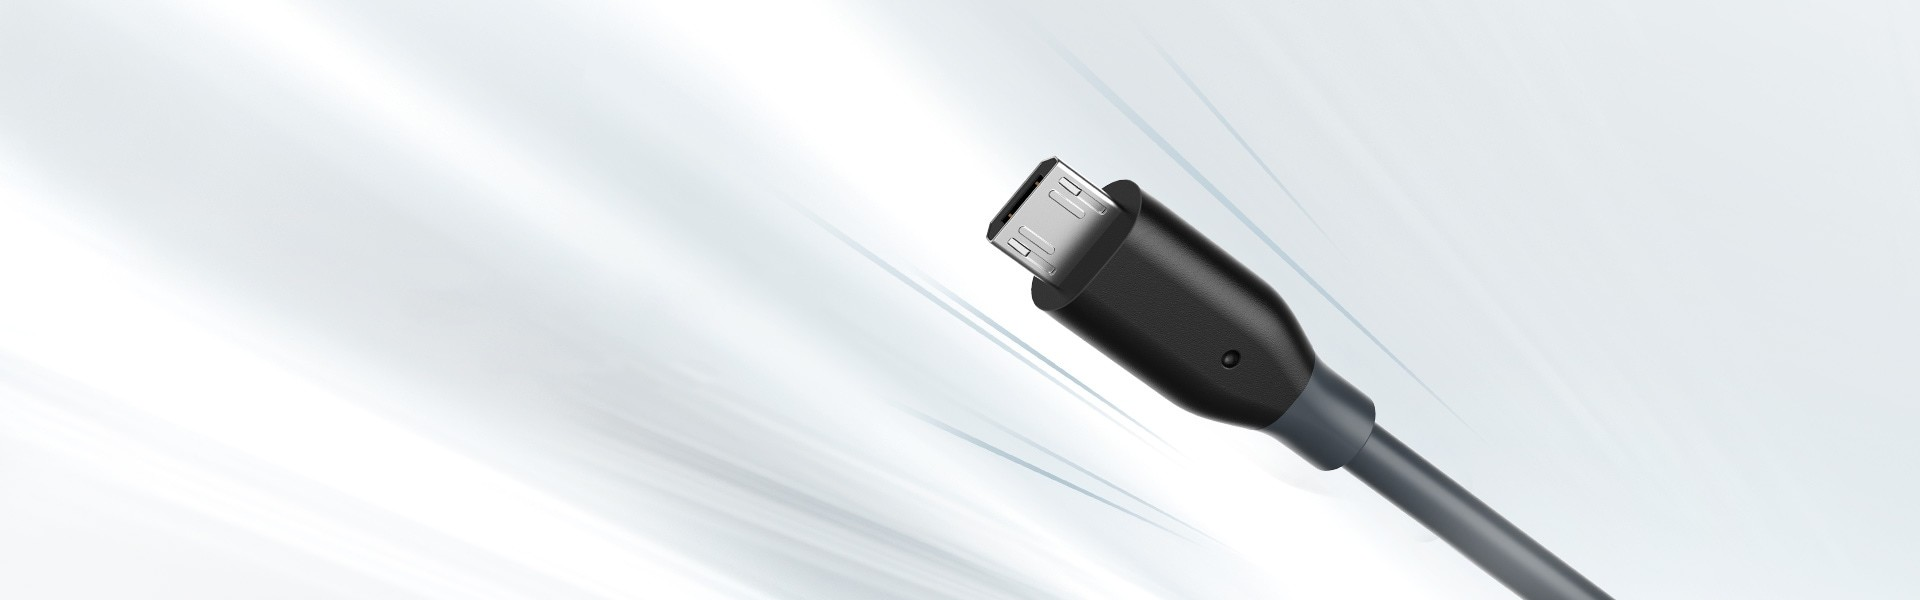 Anker | Micro USB Cables - Anker